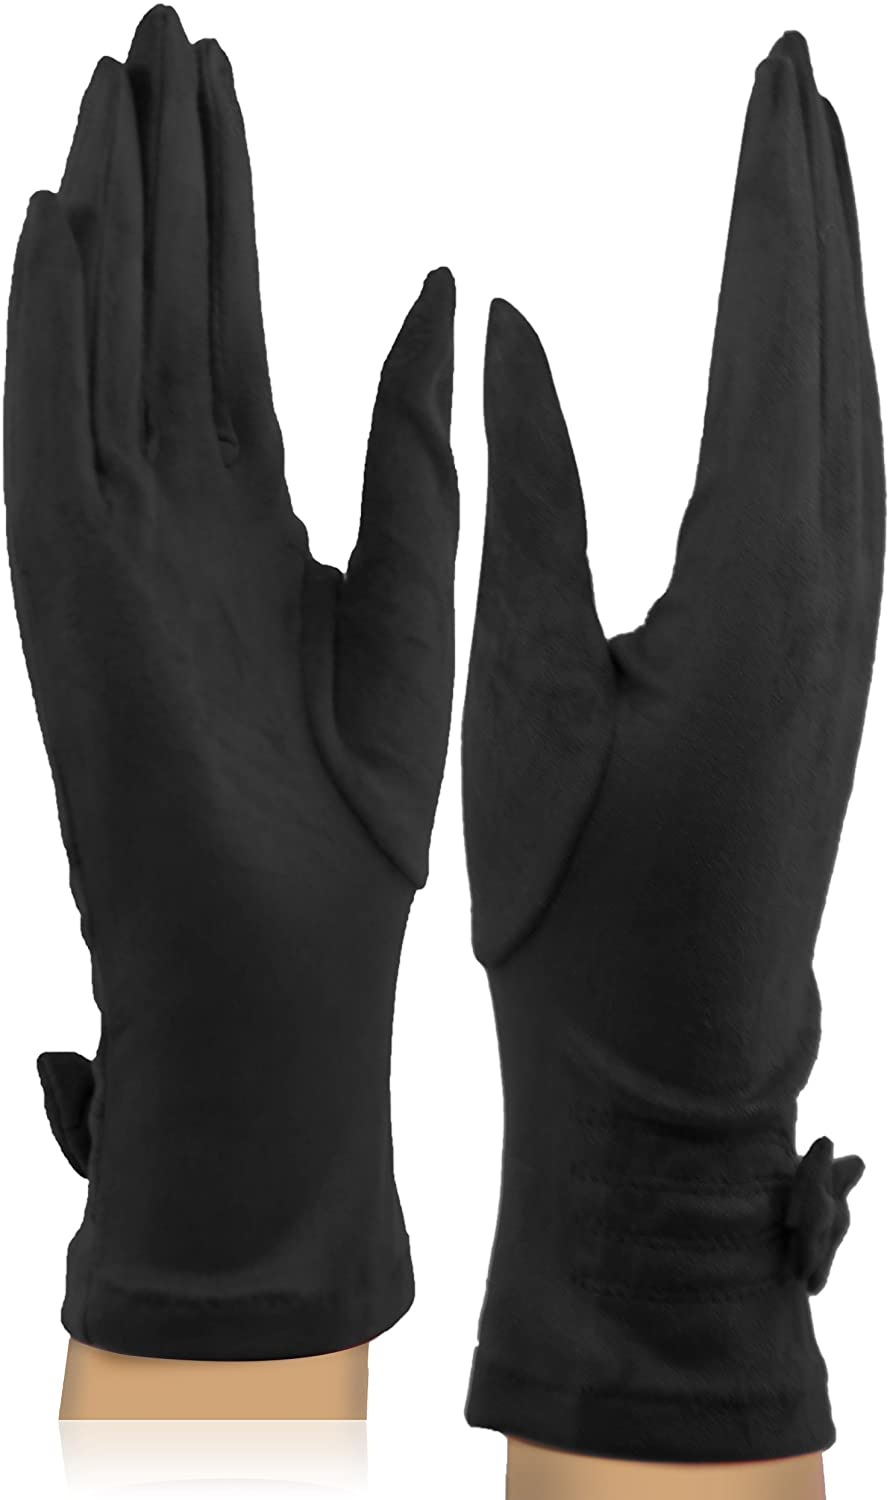 CoCo Island Women's Touchscreen Gloves